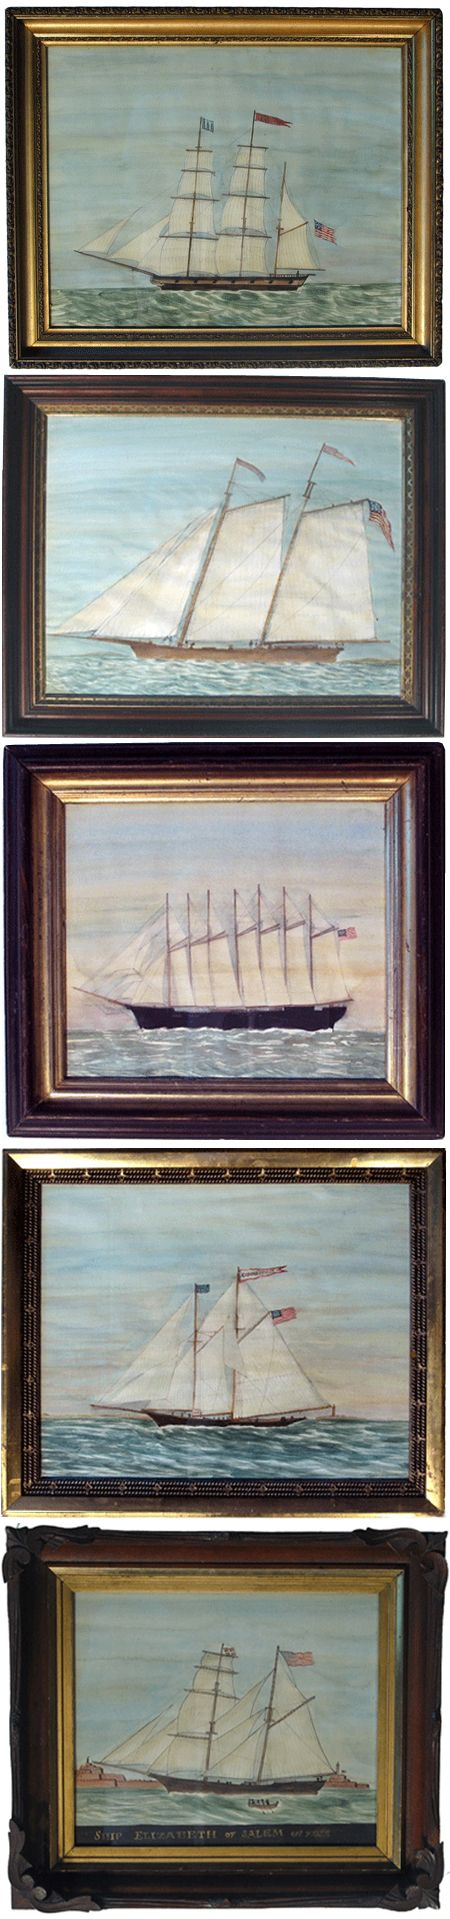 Love these vintage ship paintings by Mary Maguire! via @jealouscurator cc @bellamakalani